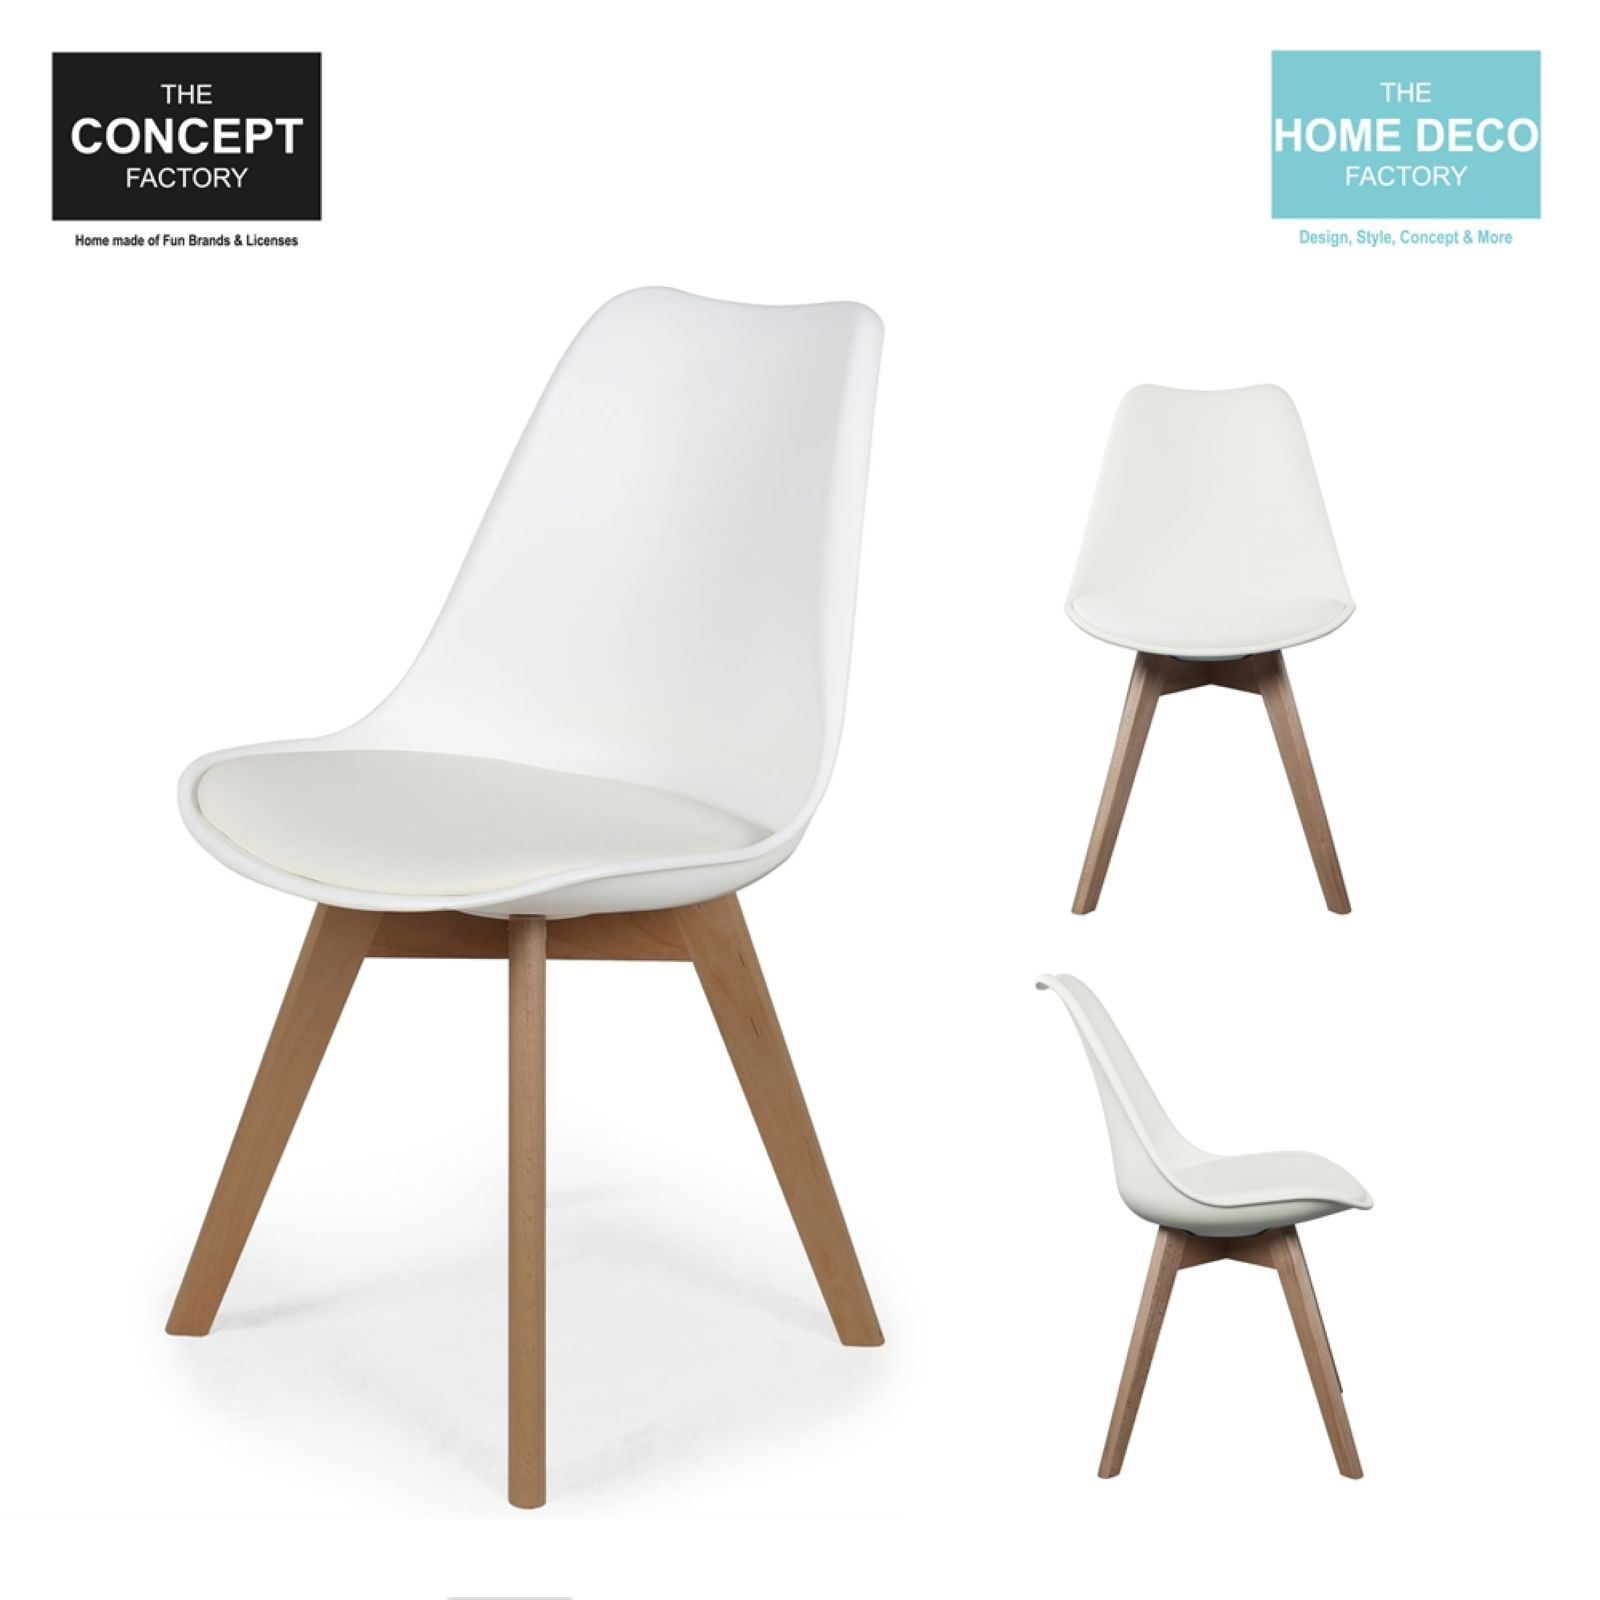 the home deco factory lot de 2 chaises scandinave avec coussin blanc brandalley. Black Bedroom Furniture Sets. Home Design Ideas